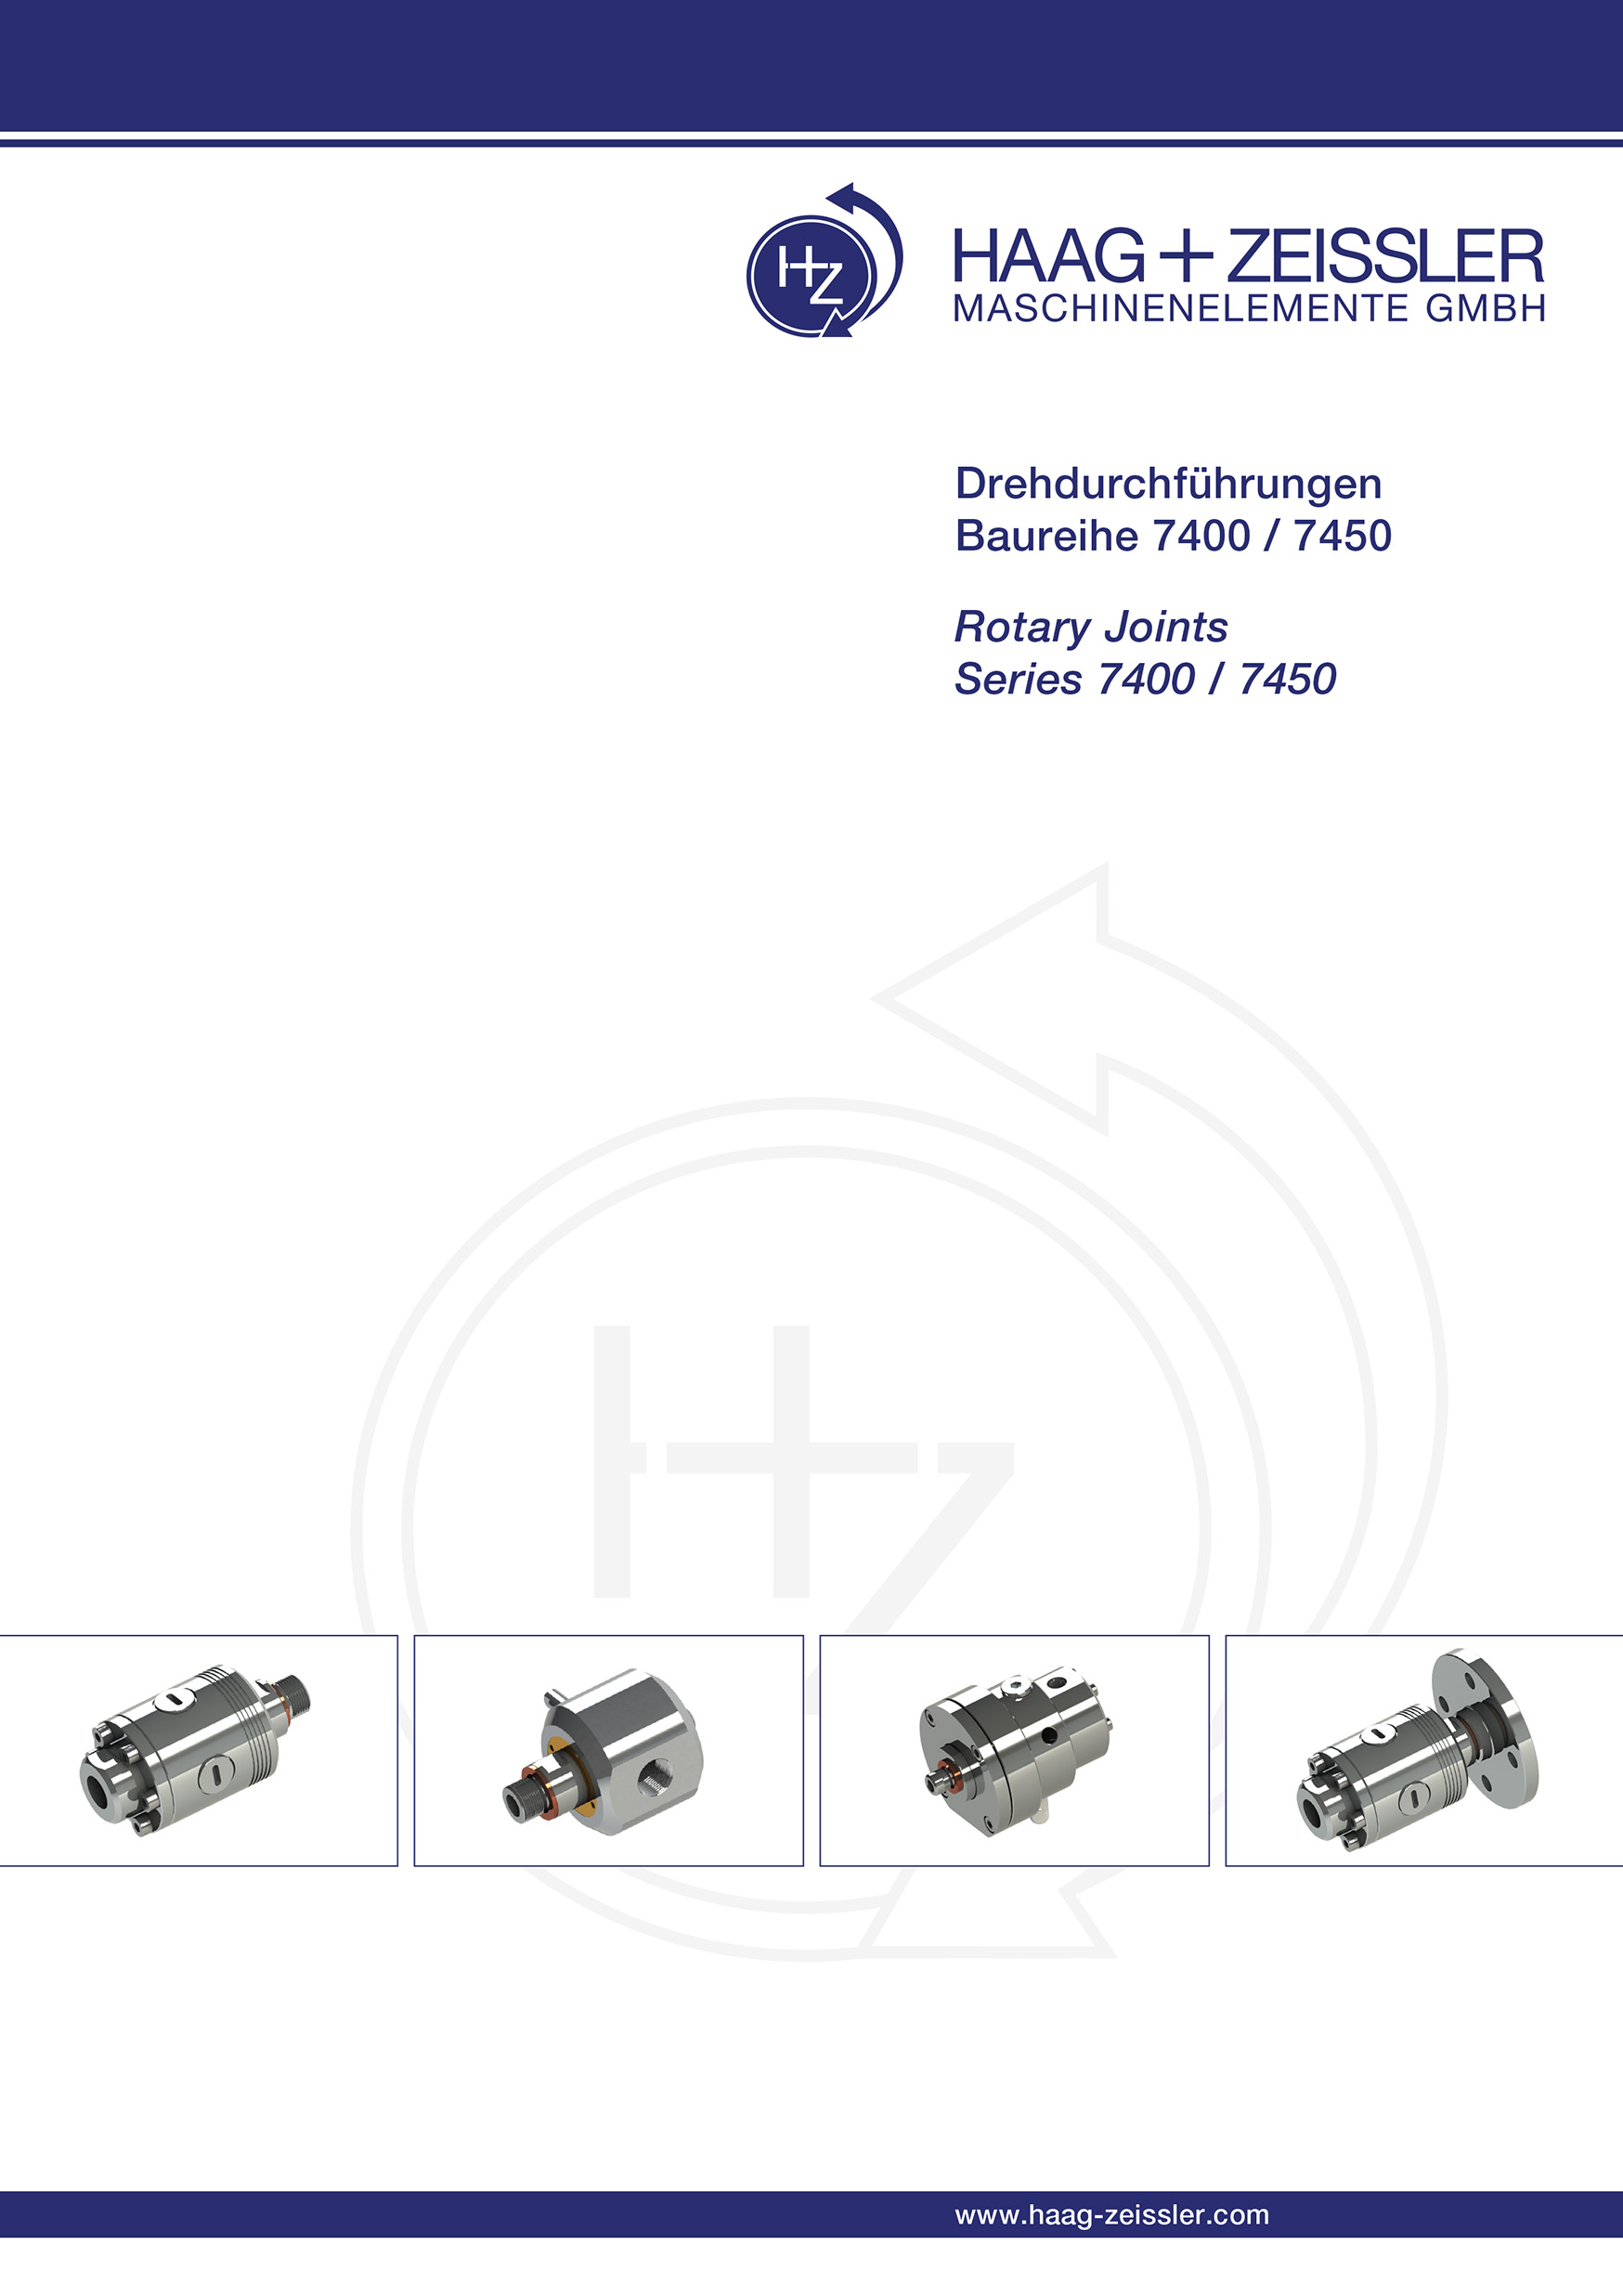 New brochure – Rotary joint series 7400 / 7450 for high pressure